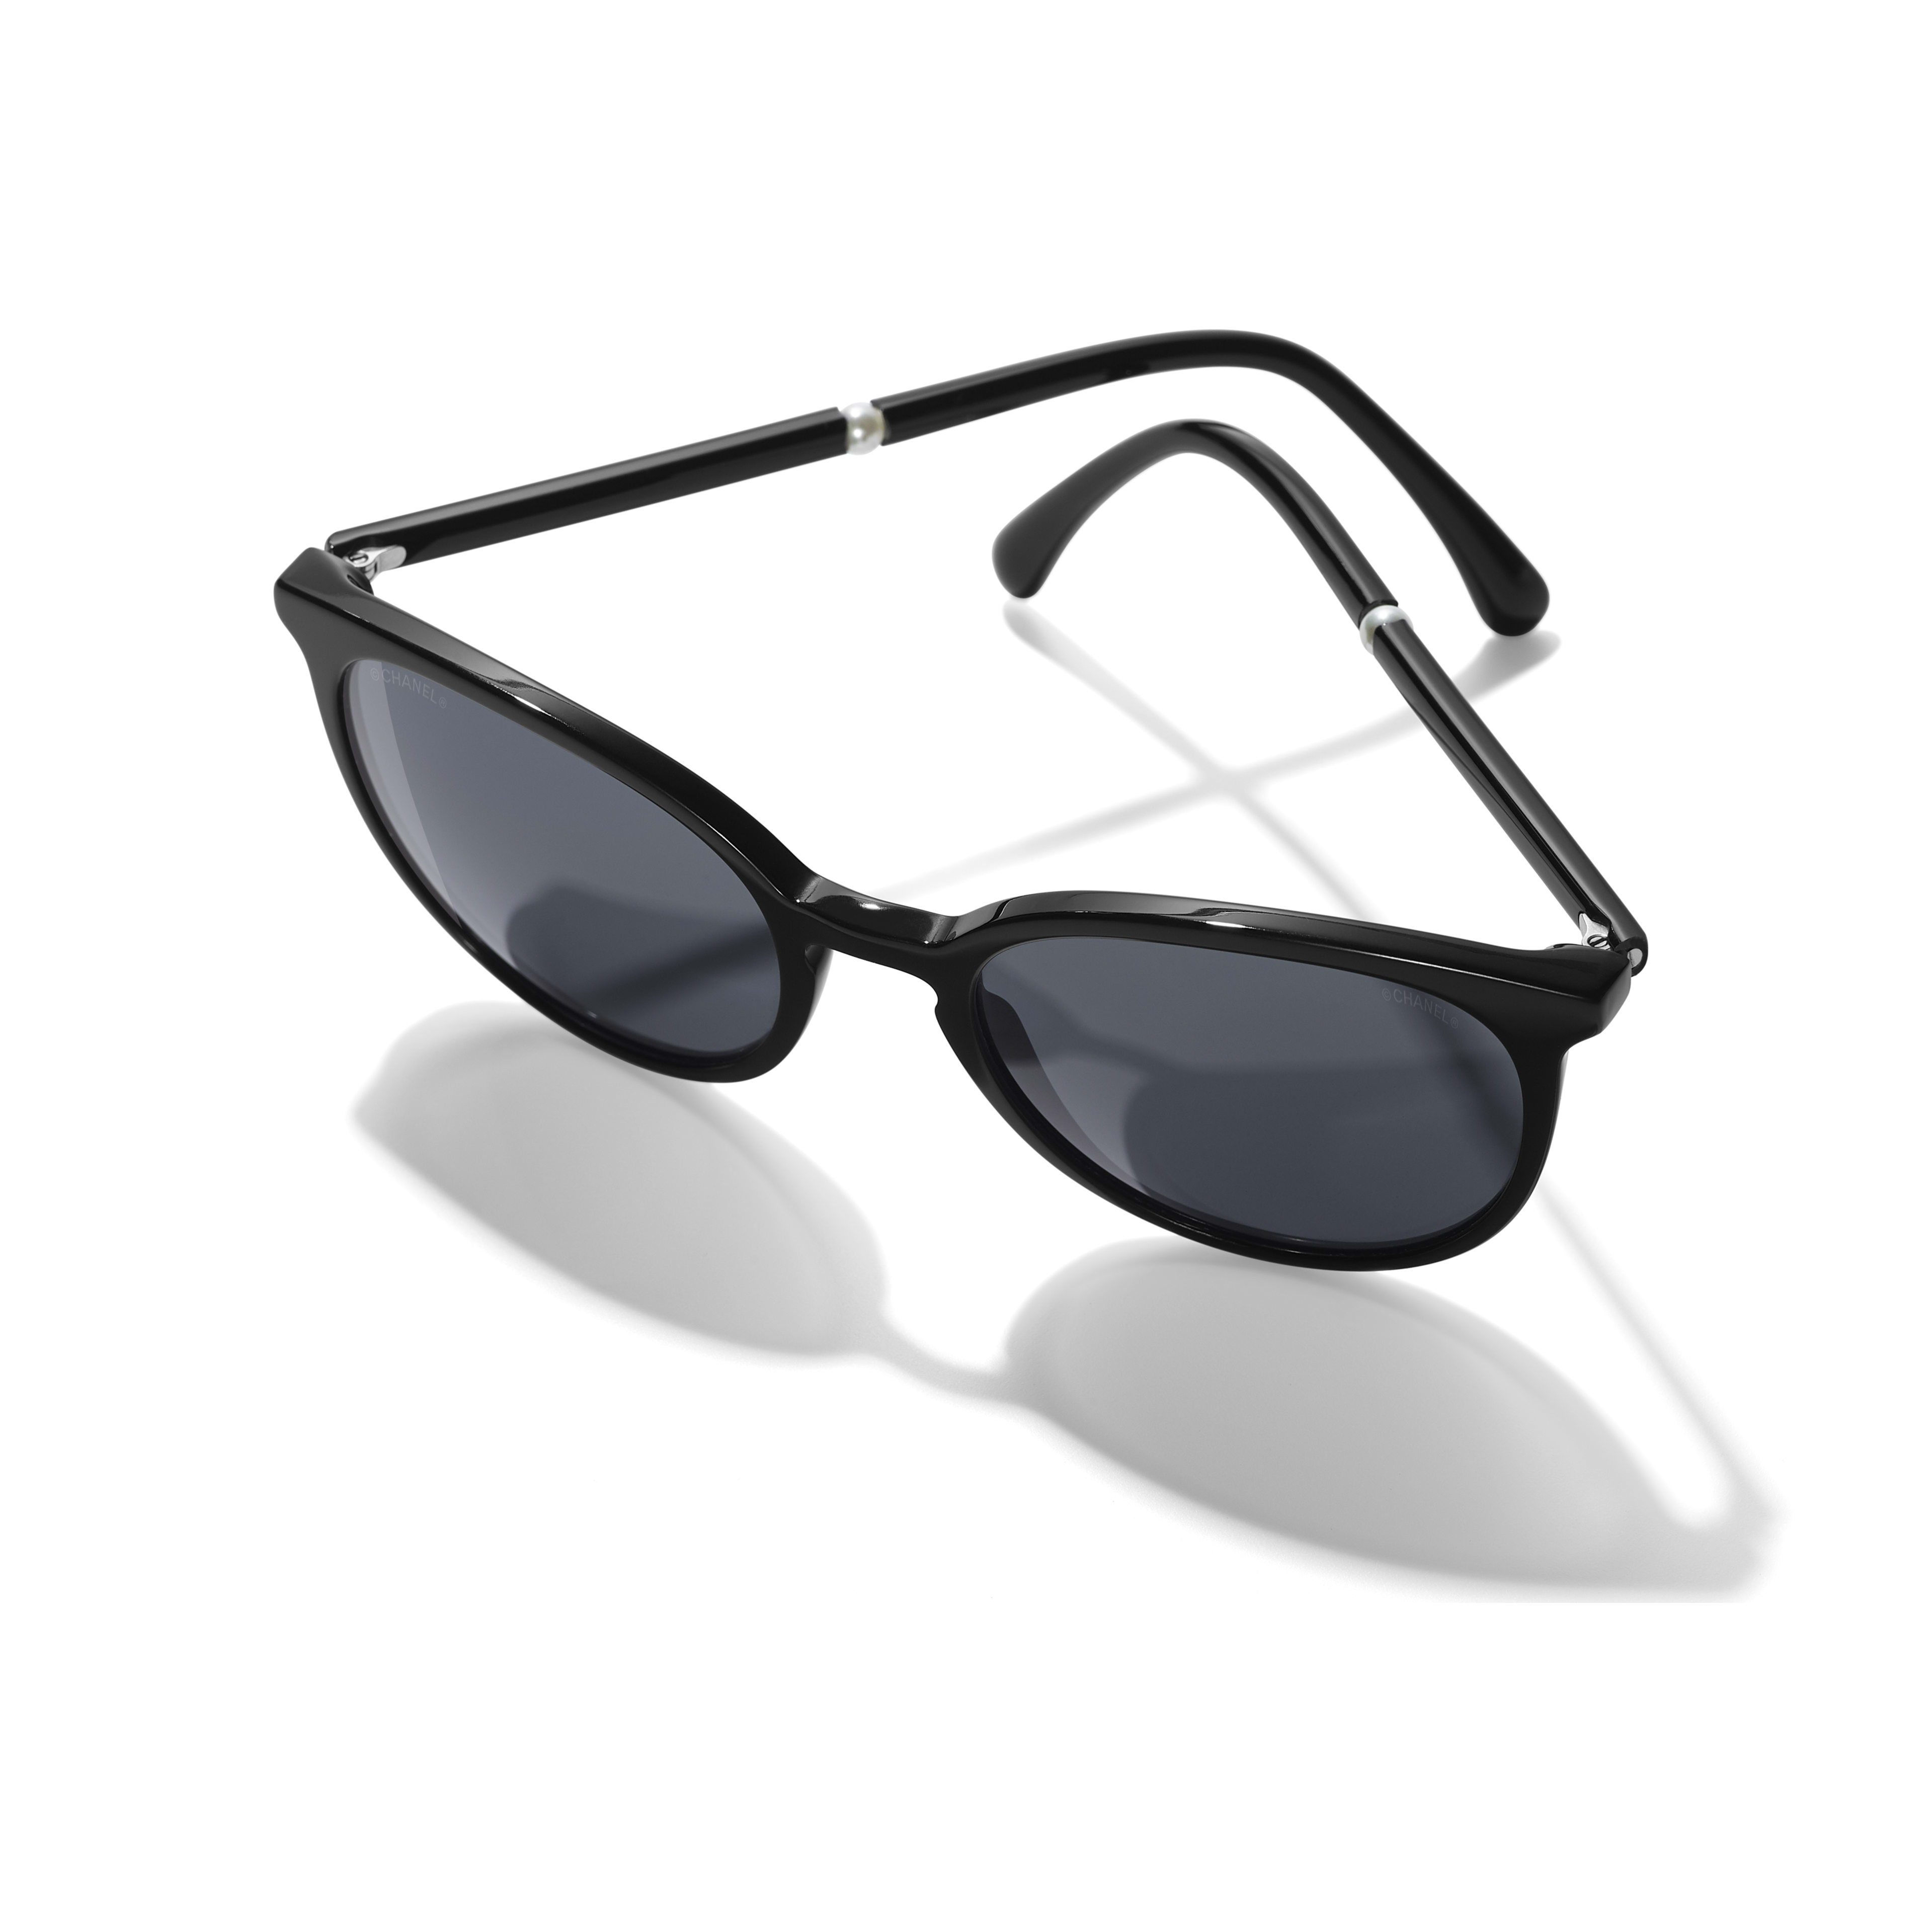 Butterfly Sunglasses - Black - Acetate & Imitation Pearls - Extra view - see full sized version